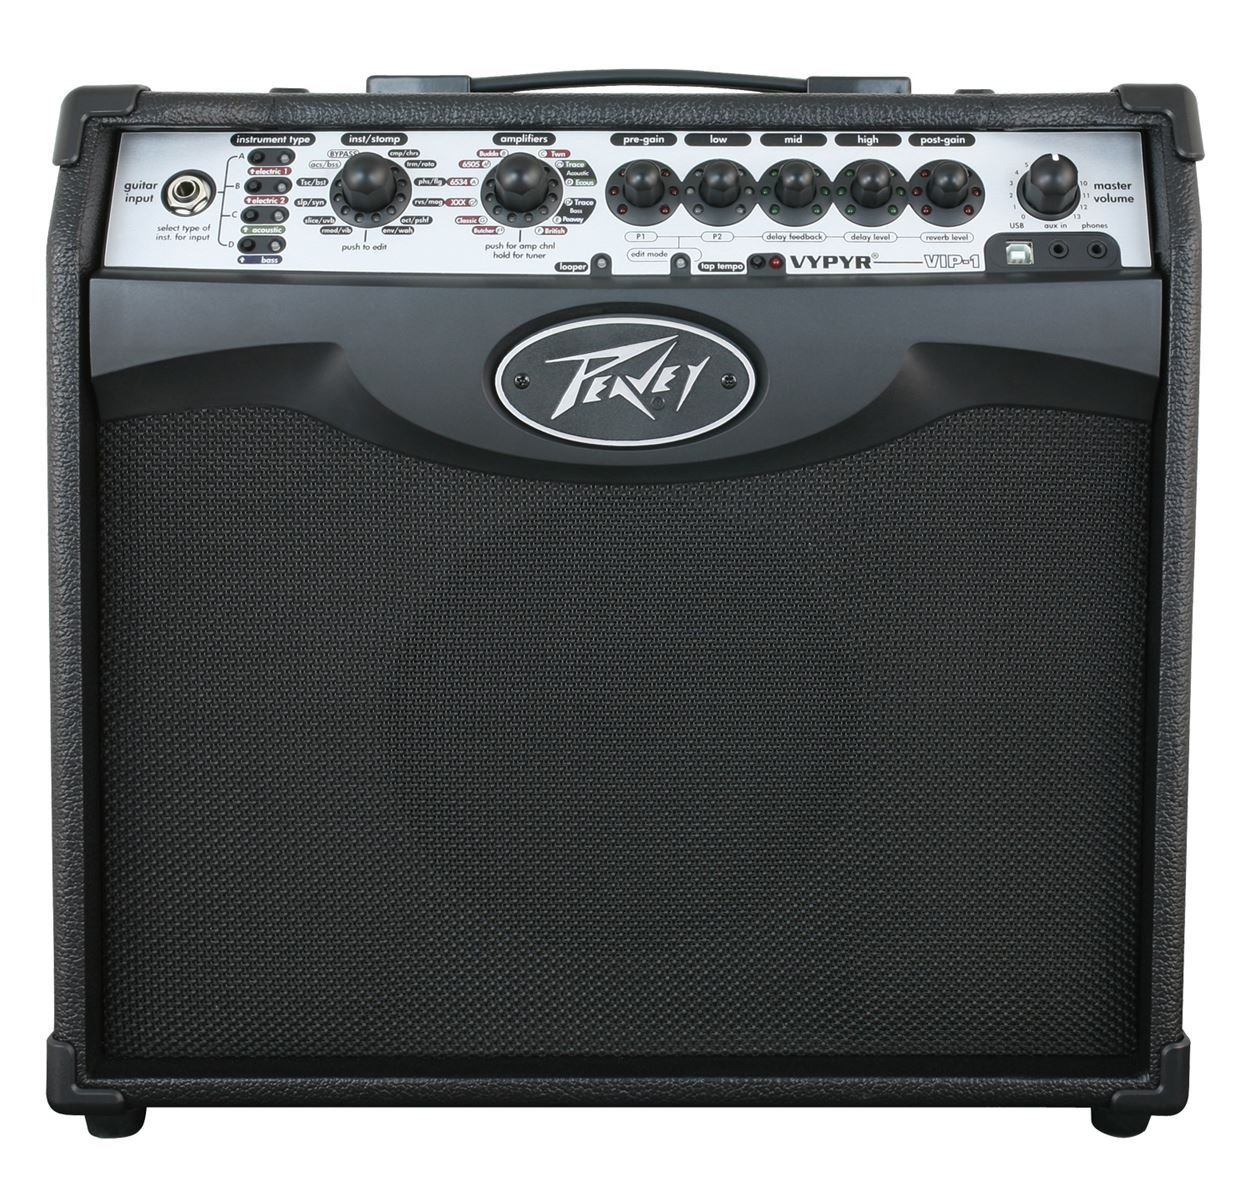 Peavey Vypyr VIP 1 20 Watt 1x8 Combo Practice Guitar Amplifier+Instrument Cable by Peavey (Image #3)